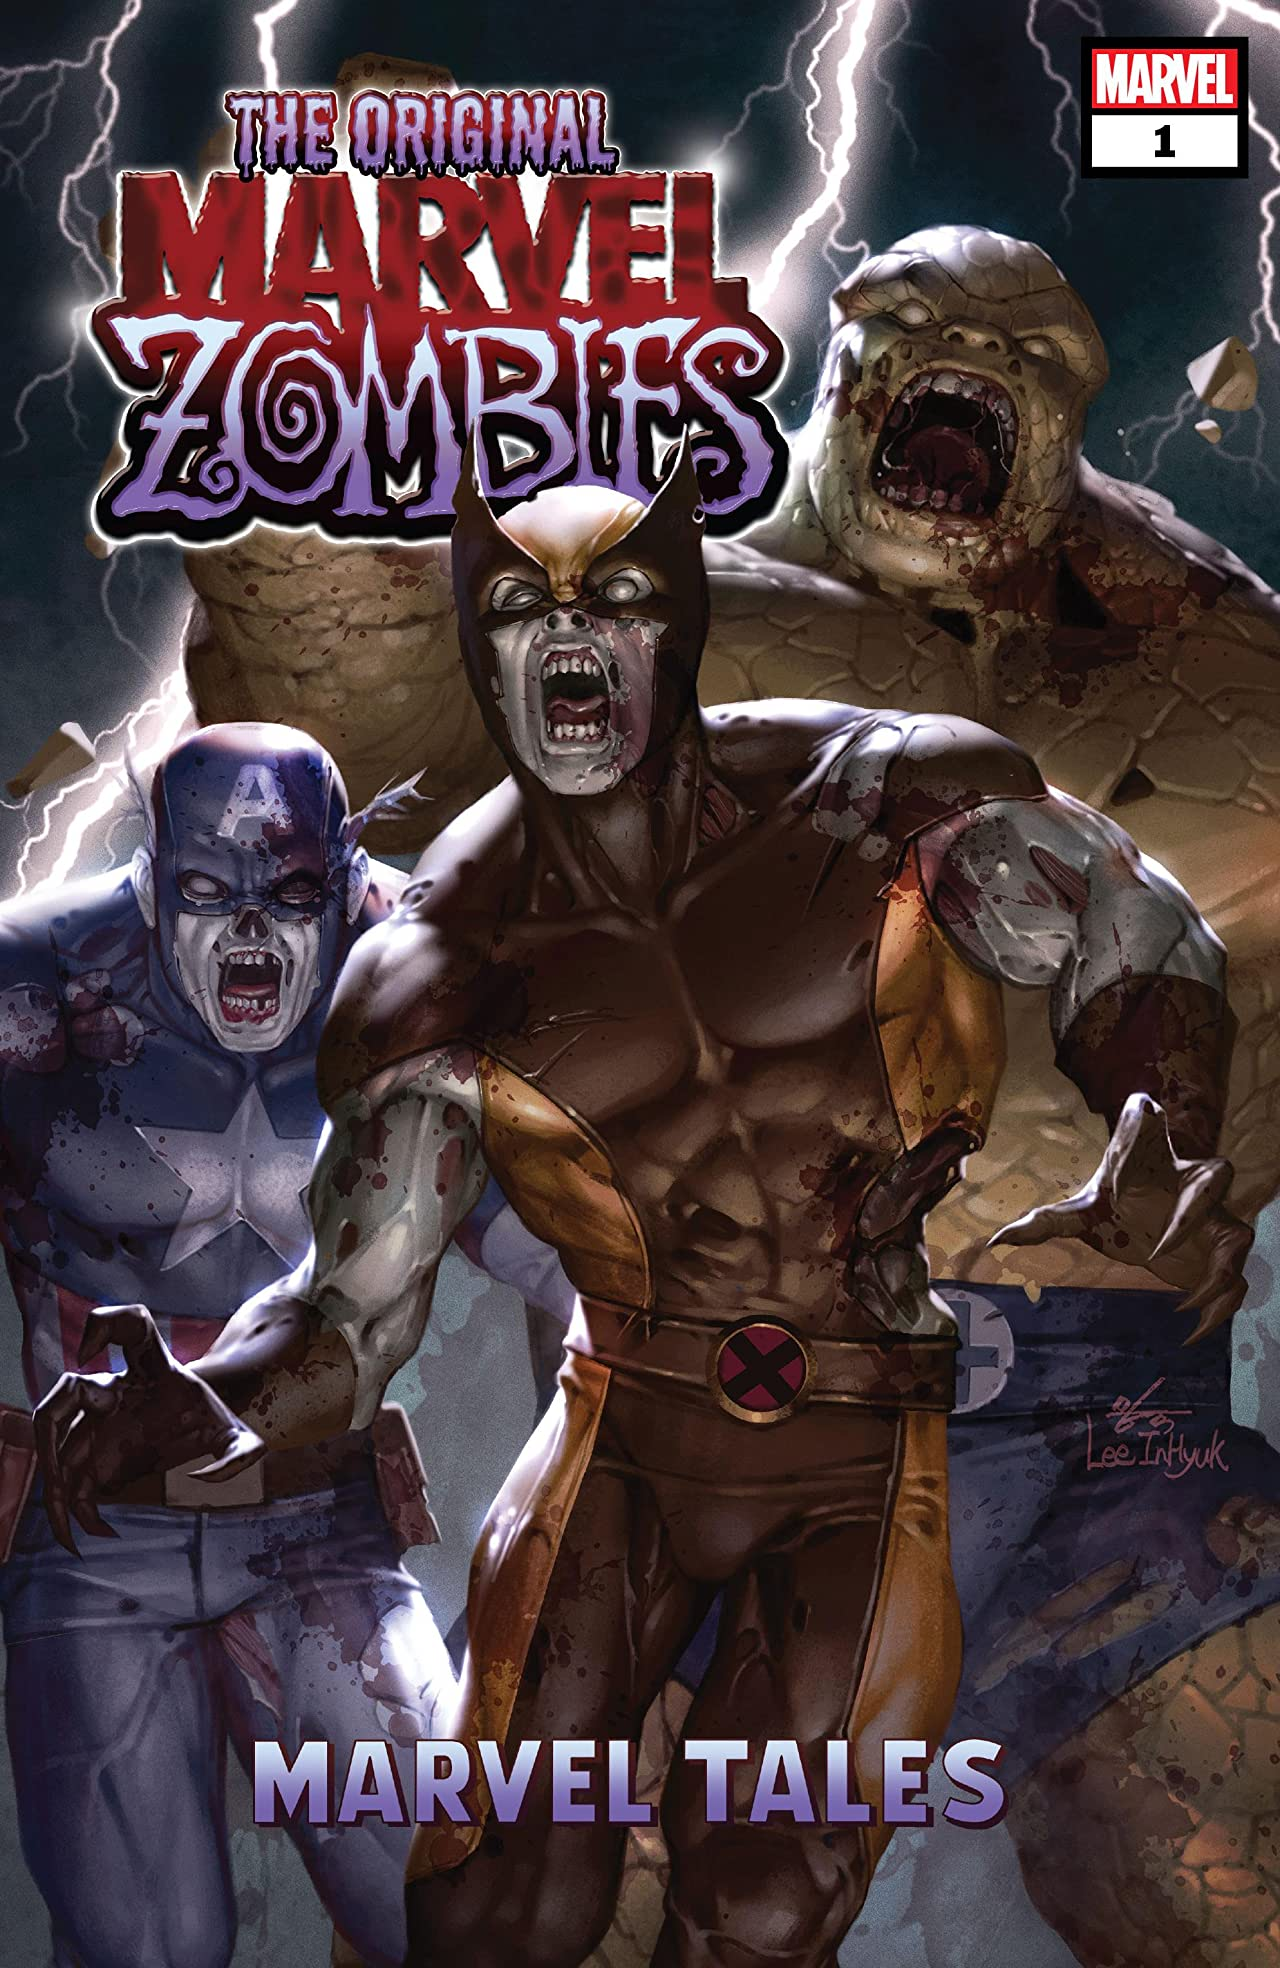 The Original Marvel Zombies: Marvel Tales (2020) #1